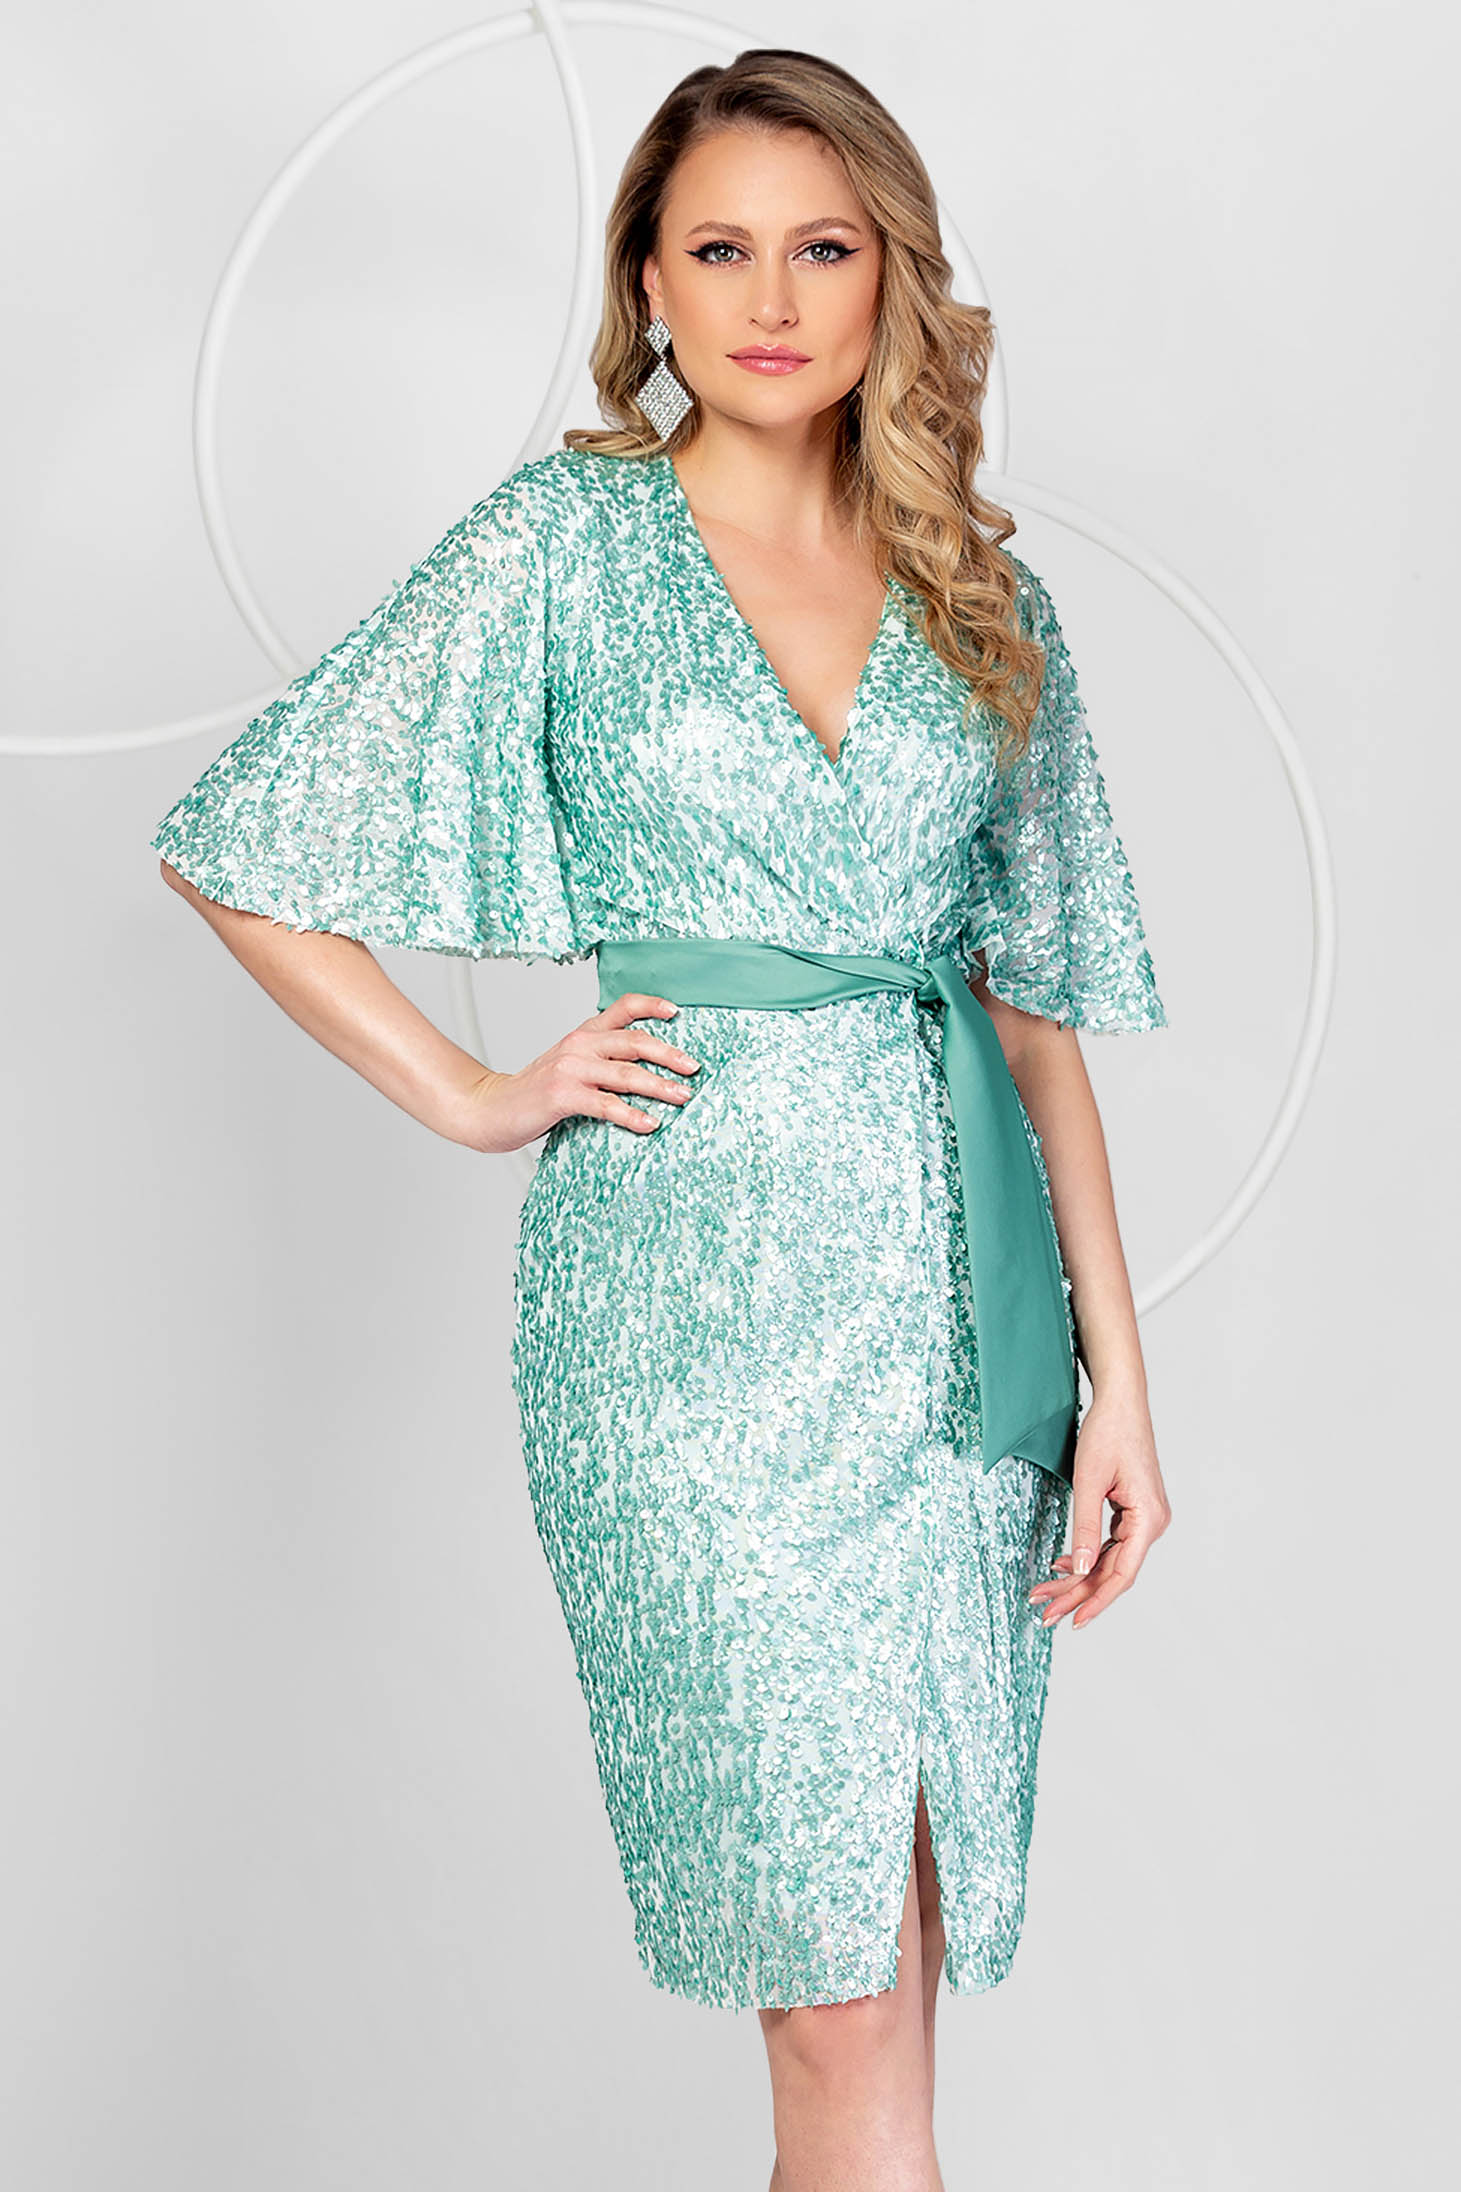 Mint dress occasional a-line with sequins with butterfly sleeves